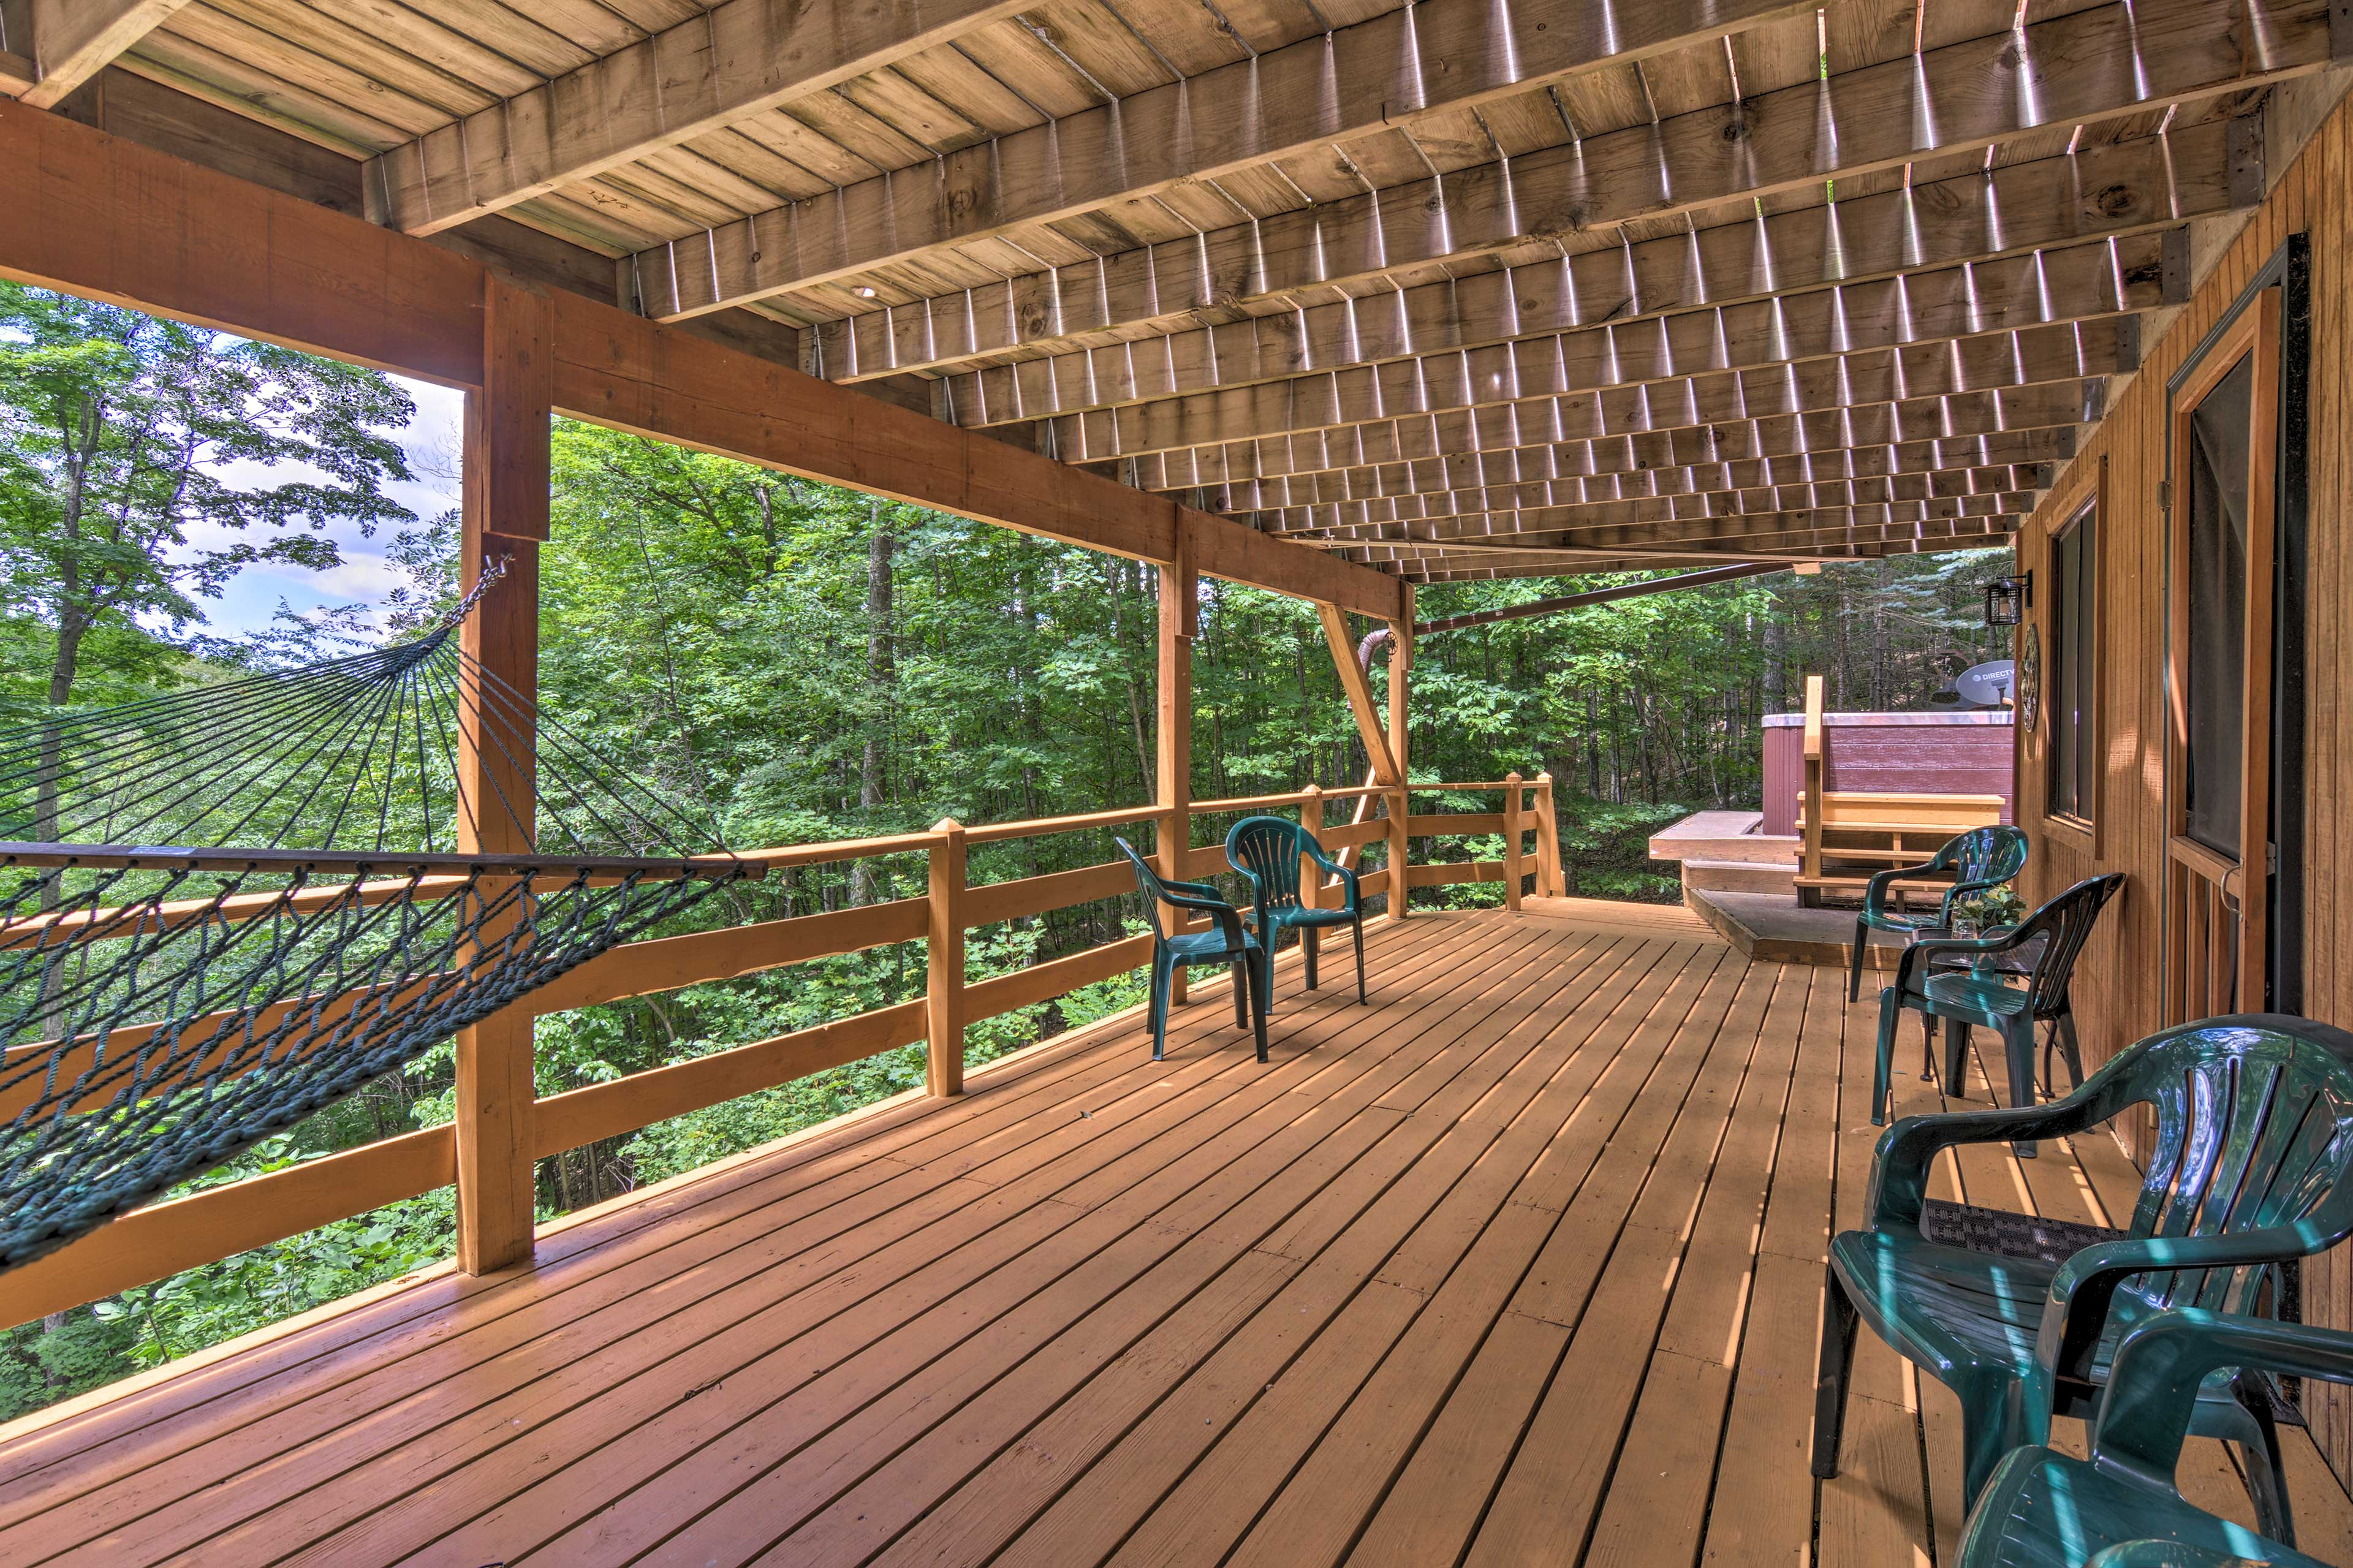 Two decks ensure everyone has a place to relax outside.